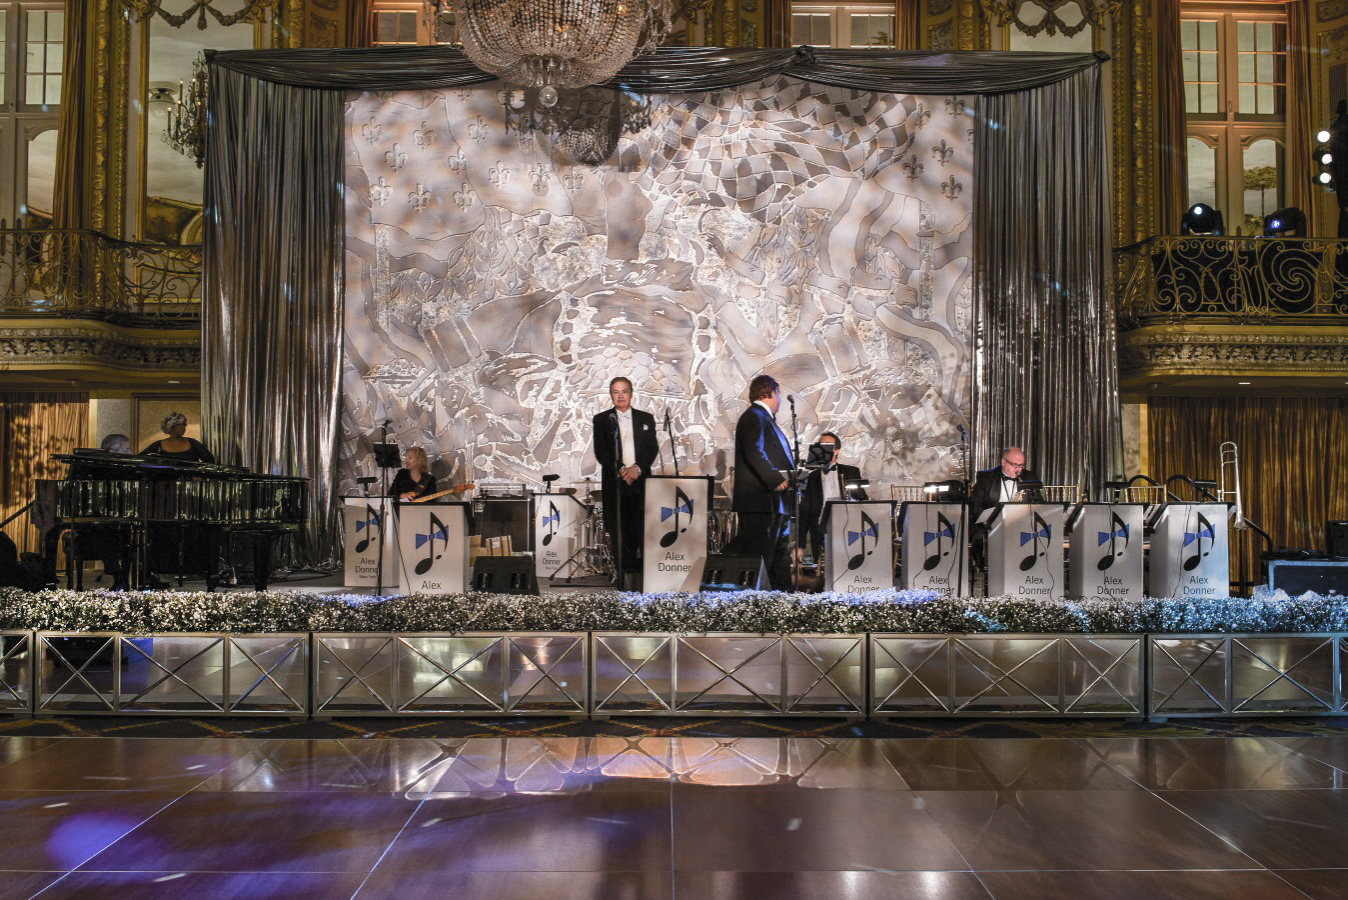 Lustrous silver stage backdrop and mirrored surrounds for the Lyric Opera's Diamond Ball with decor by HMR Designs